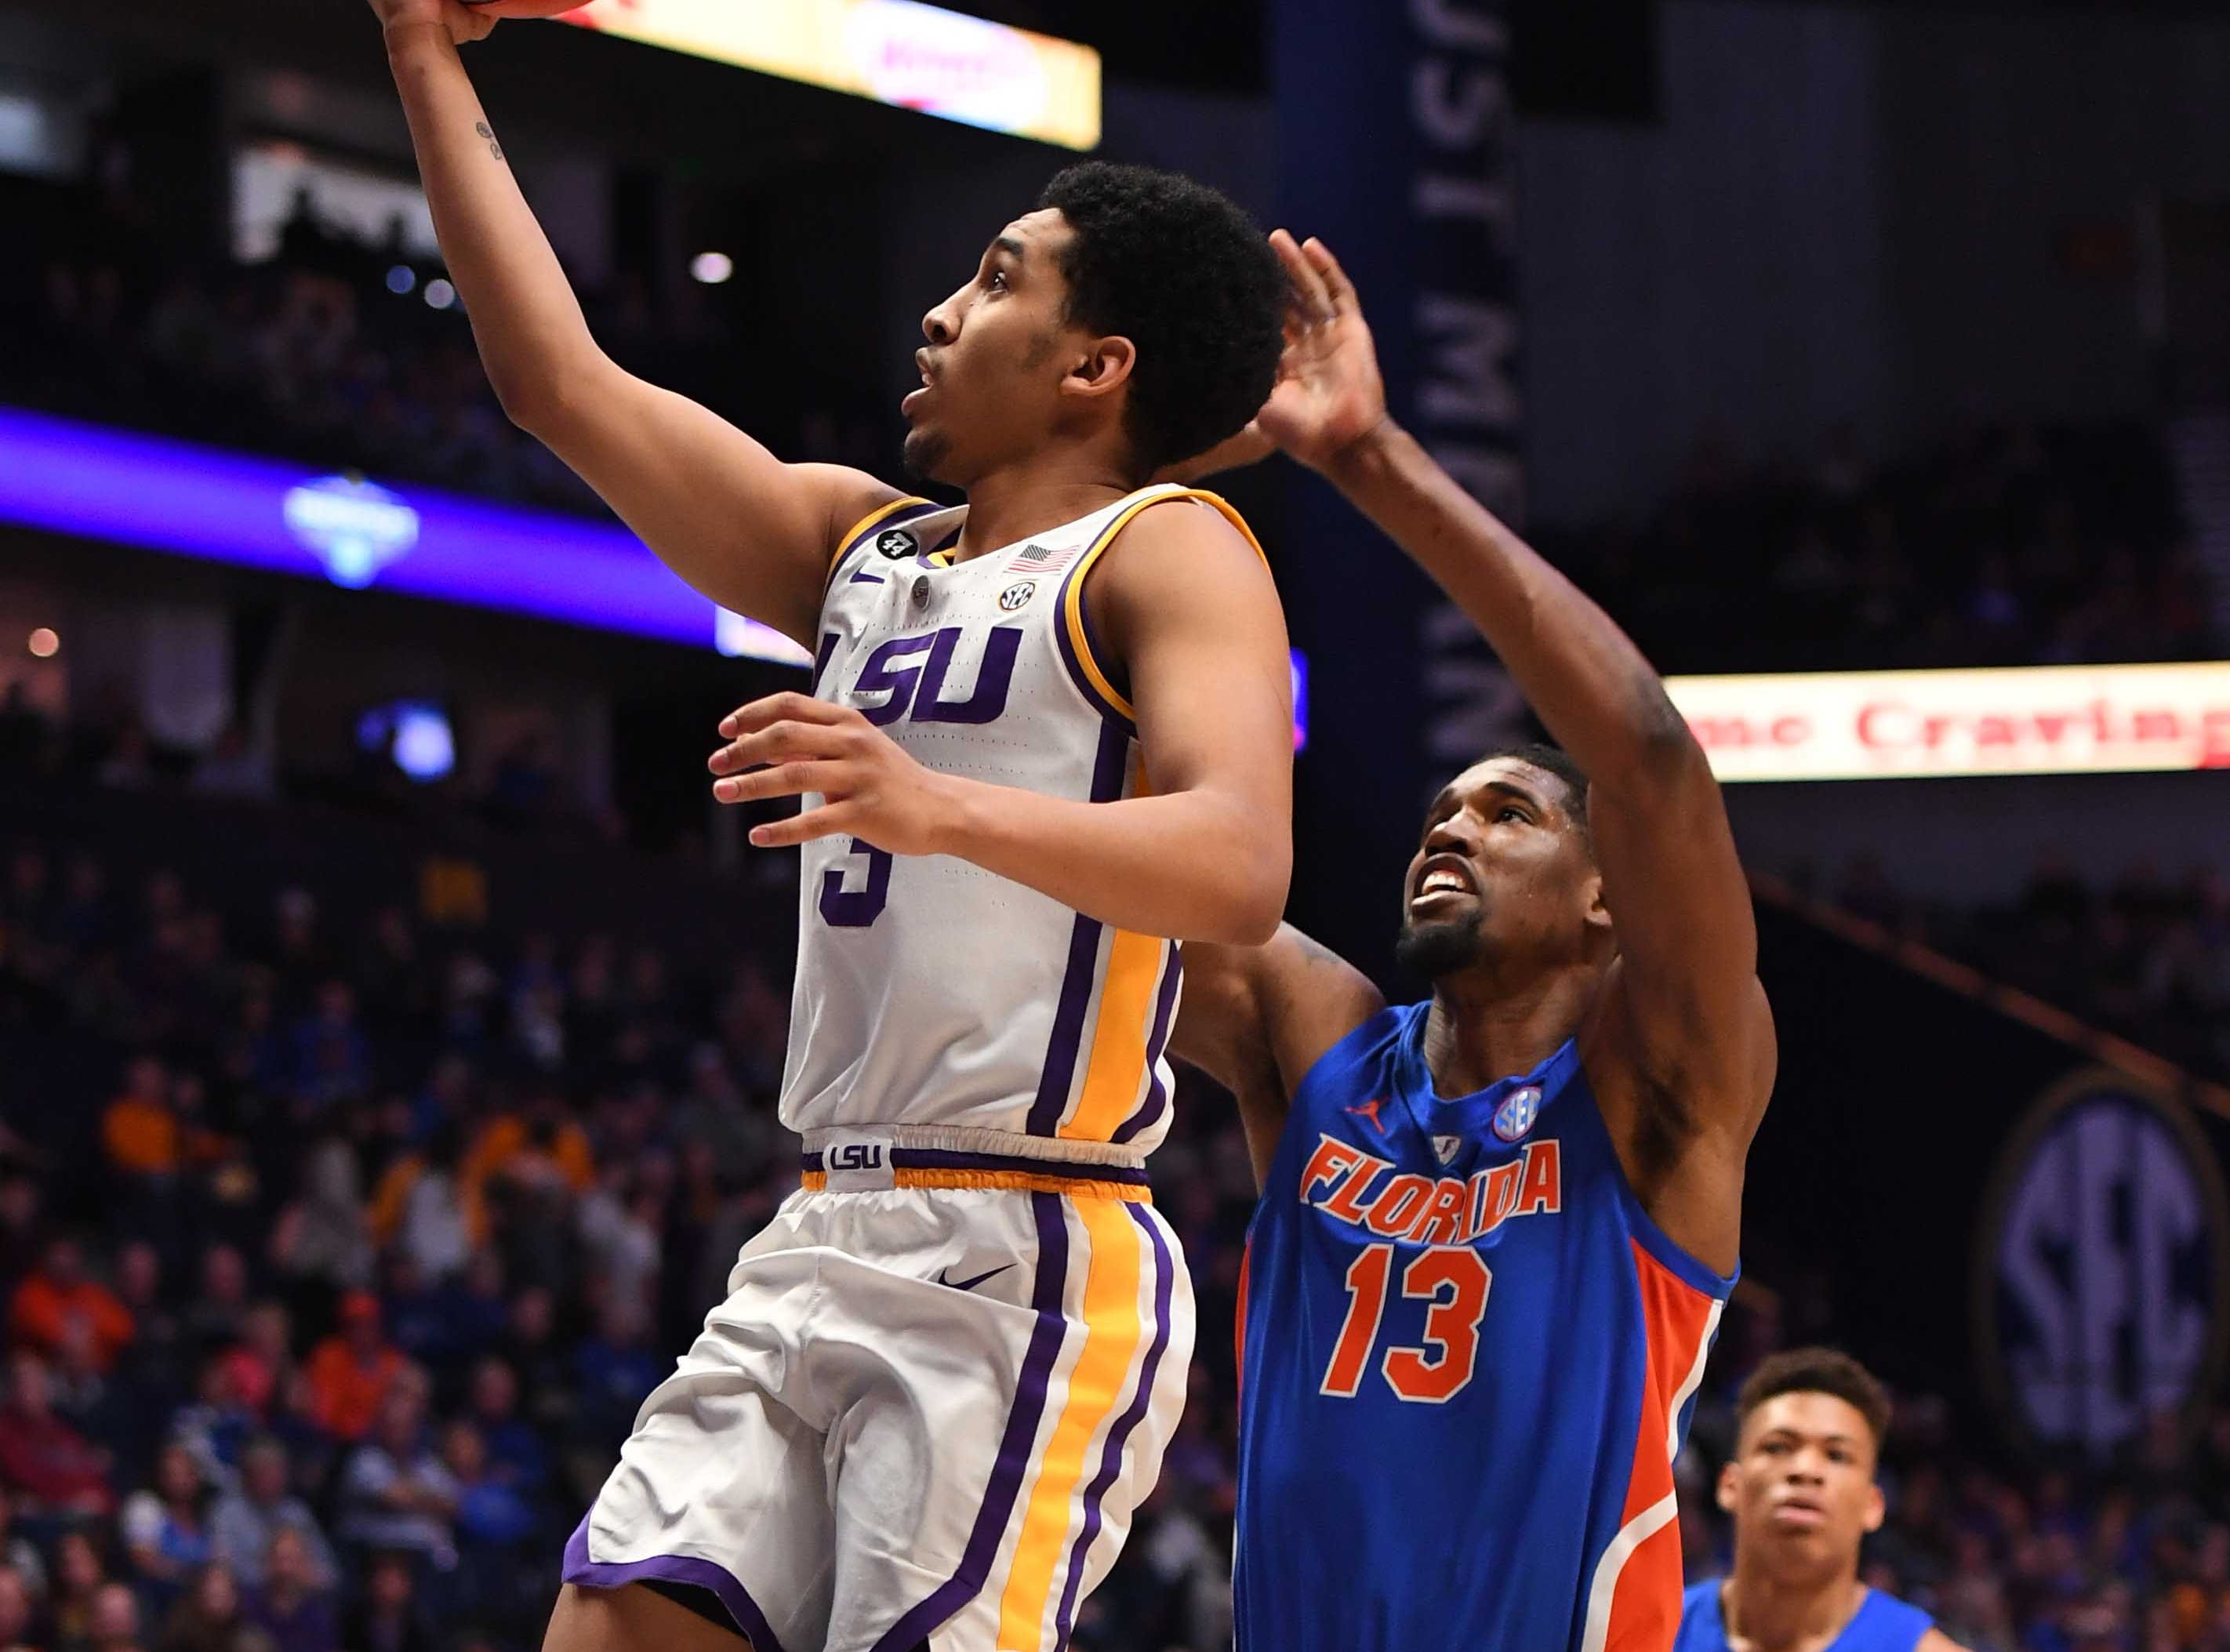 Mar 15, 2019; Nashville, TN, USA; LSU Tigers guard Tremont Waters (3) scores past Florida Gators center Kevarrius Hayes (13) during the first half of the SEC conference tournament at Bridgestone Arena. Mandatory Credit: Christopher Hanewinckel-USA TODAY Sports